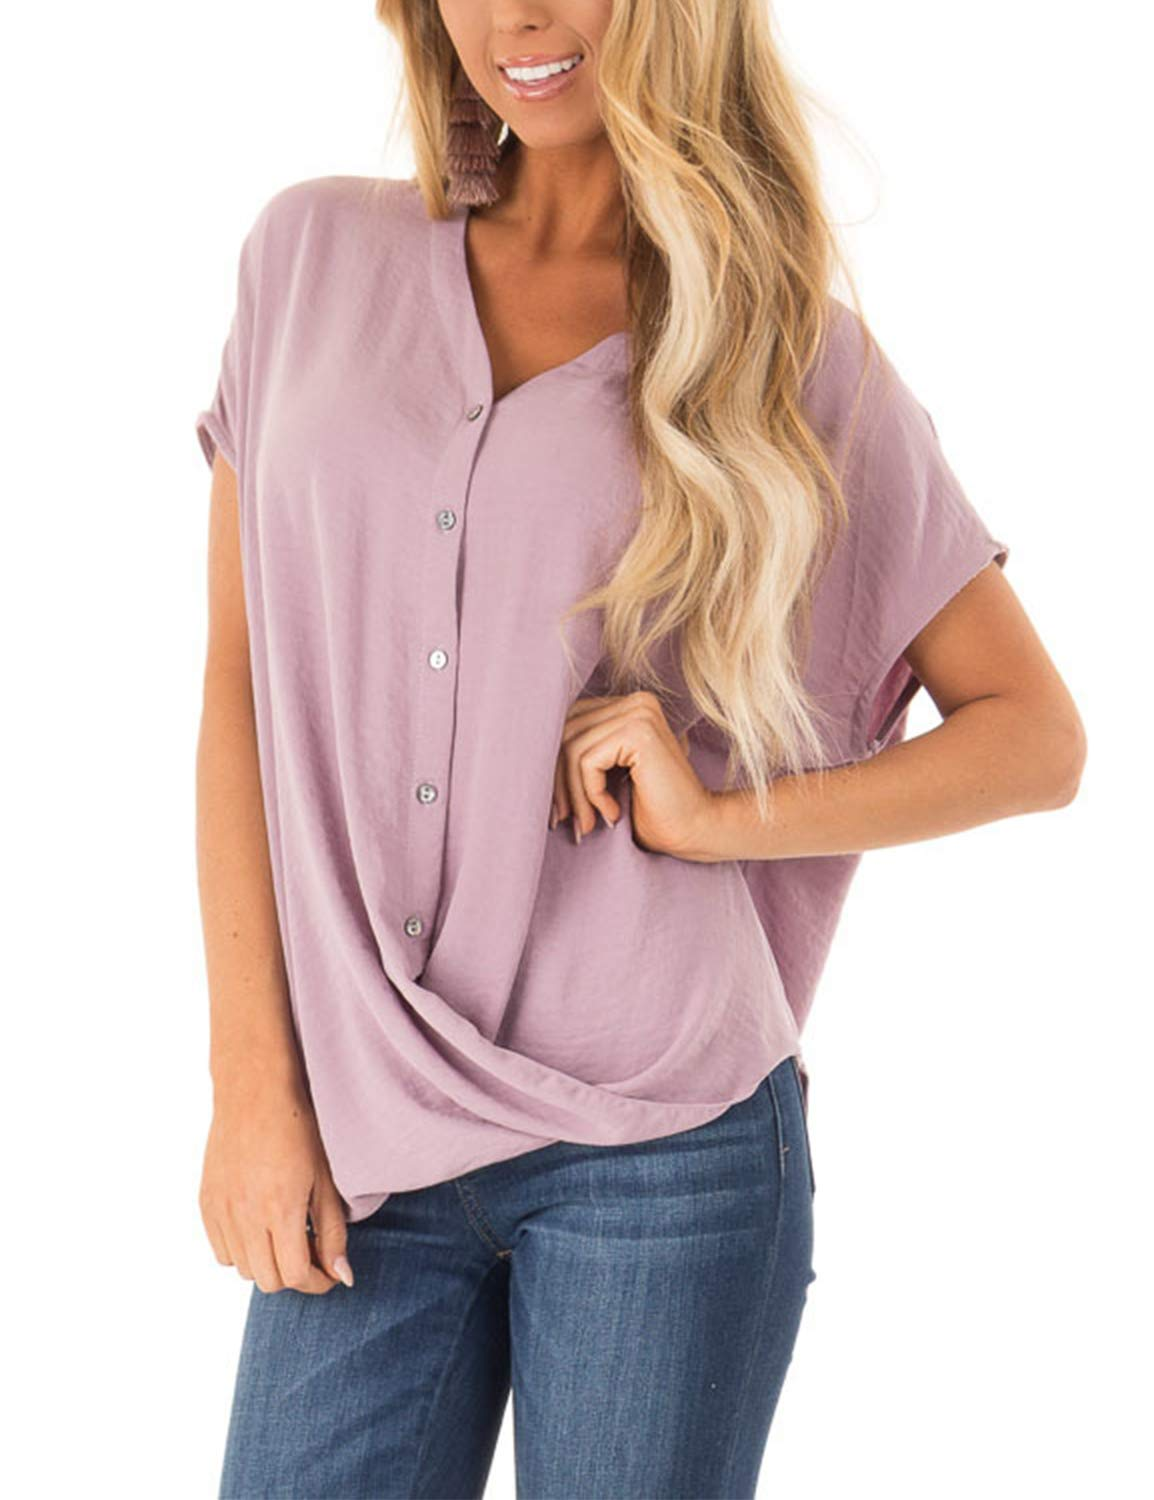 BMJL Women's V Neck T Shirt Short Sleeve Loose Top Batwing Ruched Blouse Purple